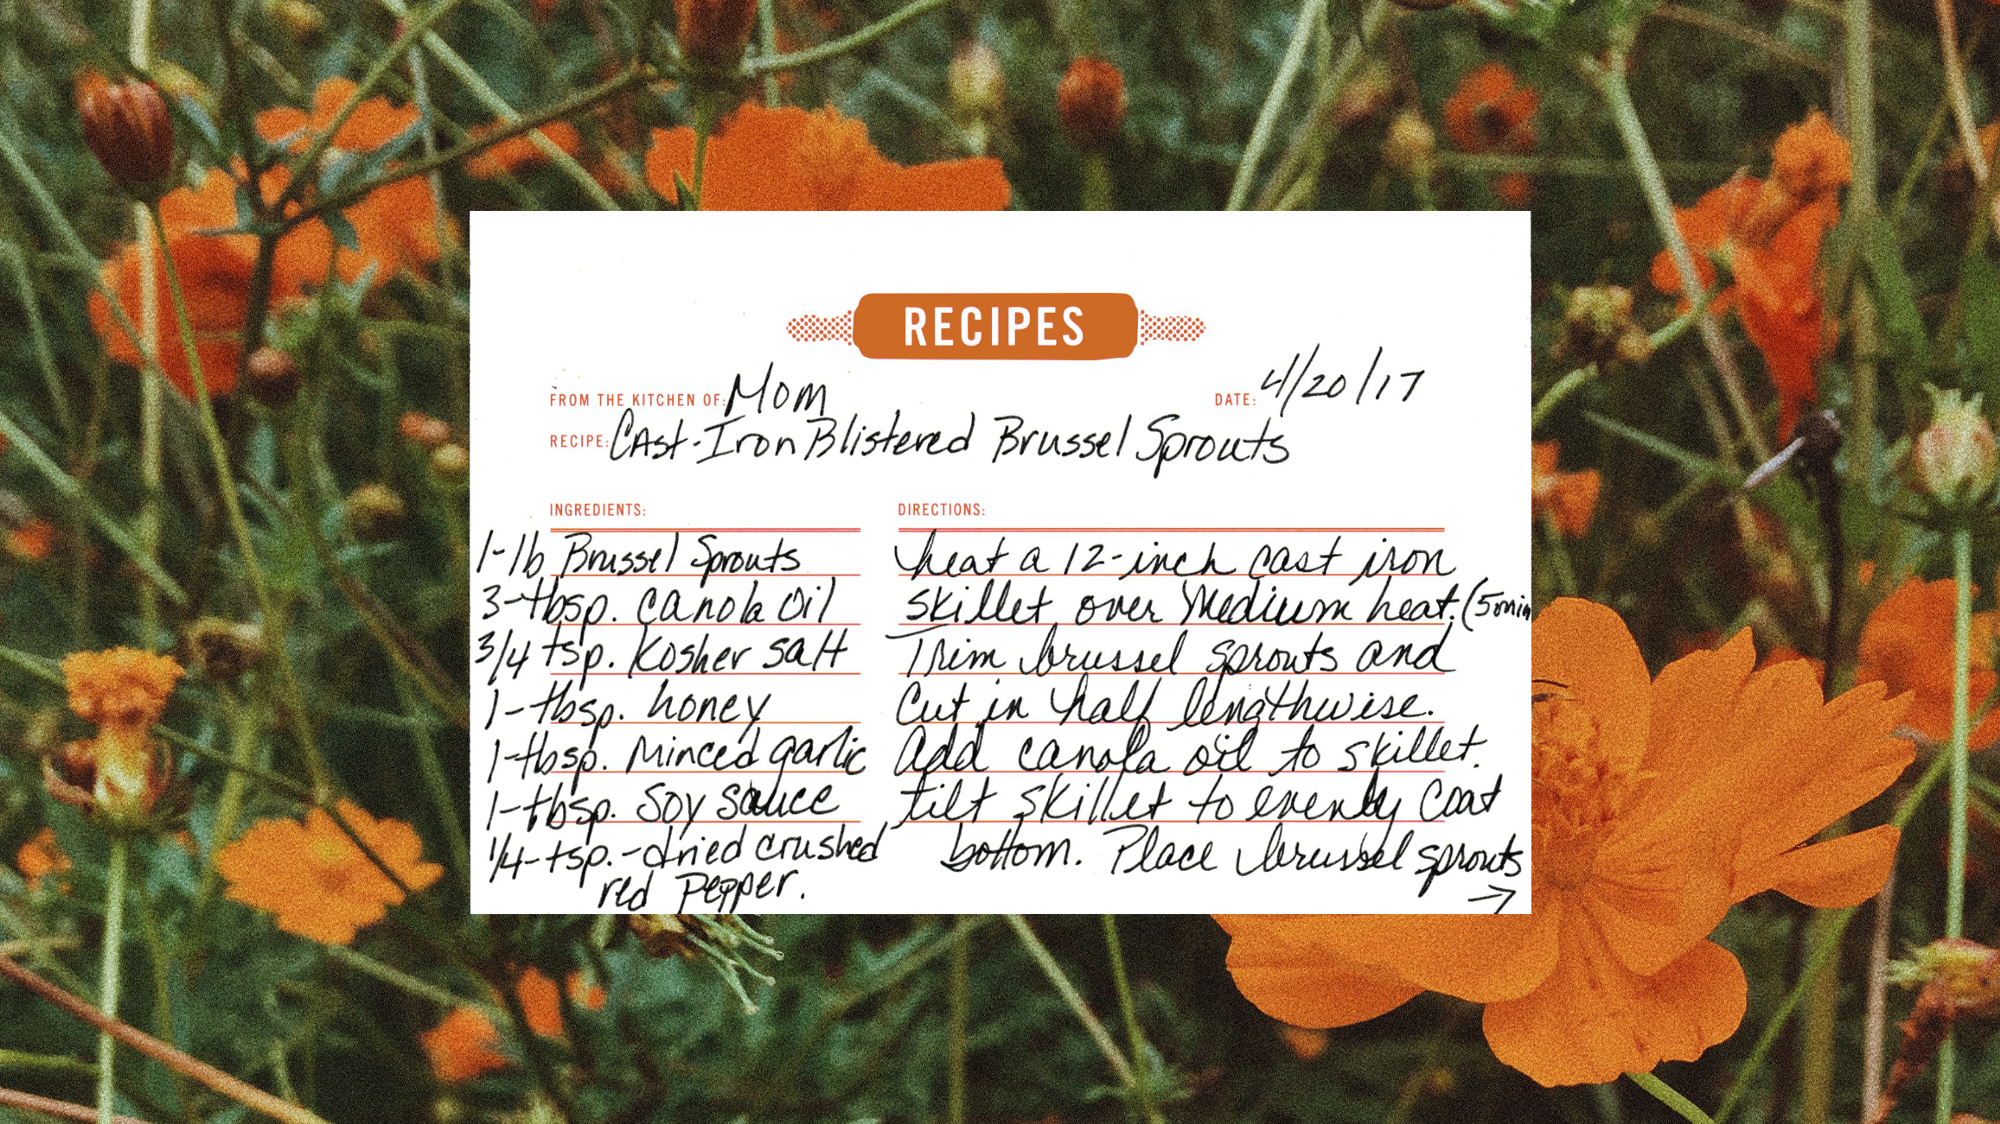 A brussels sprout recipe placed on top of an image of orange flowers.